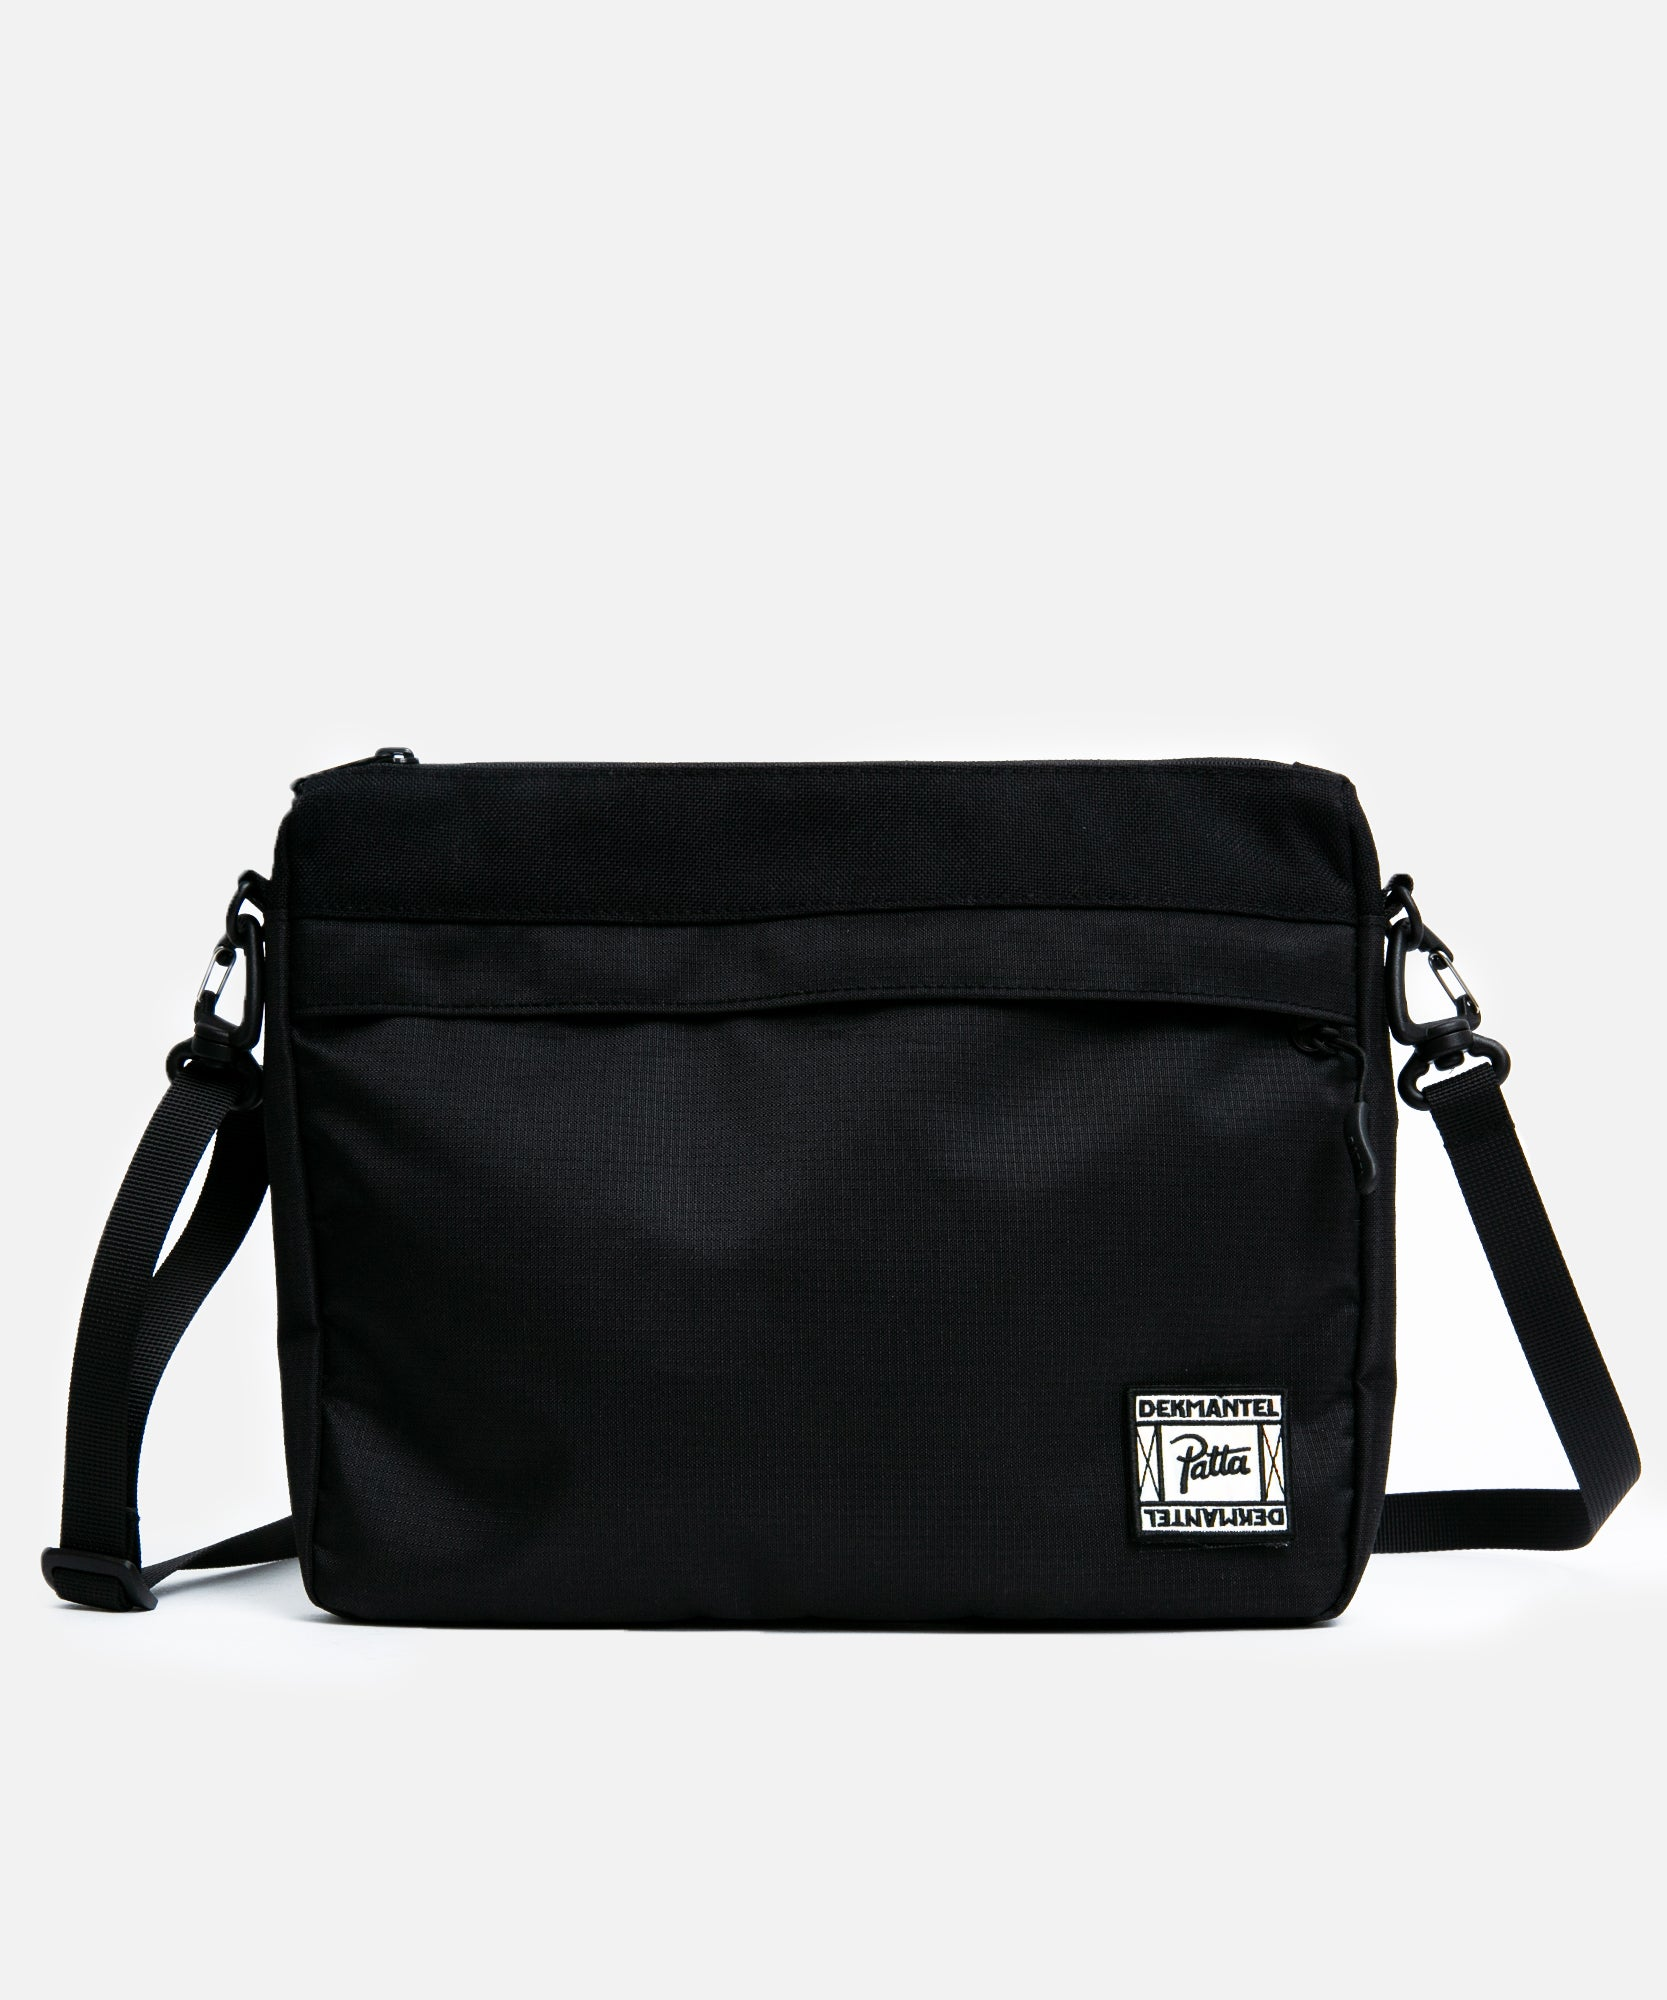 Patta x Dekmantel 2020 Shoulder Bag (Black)